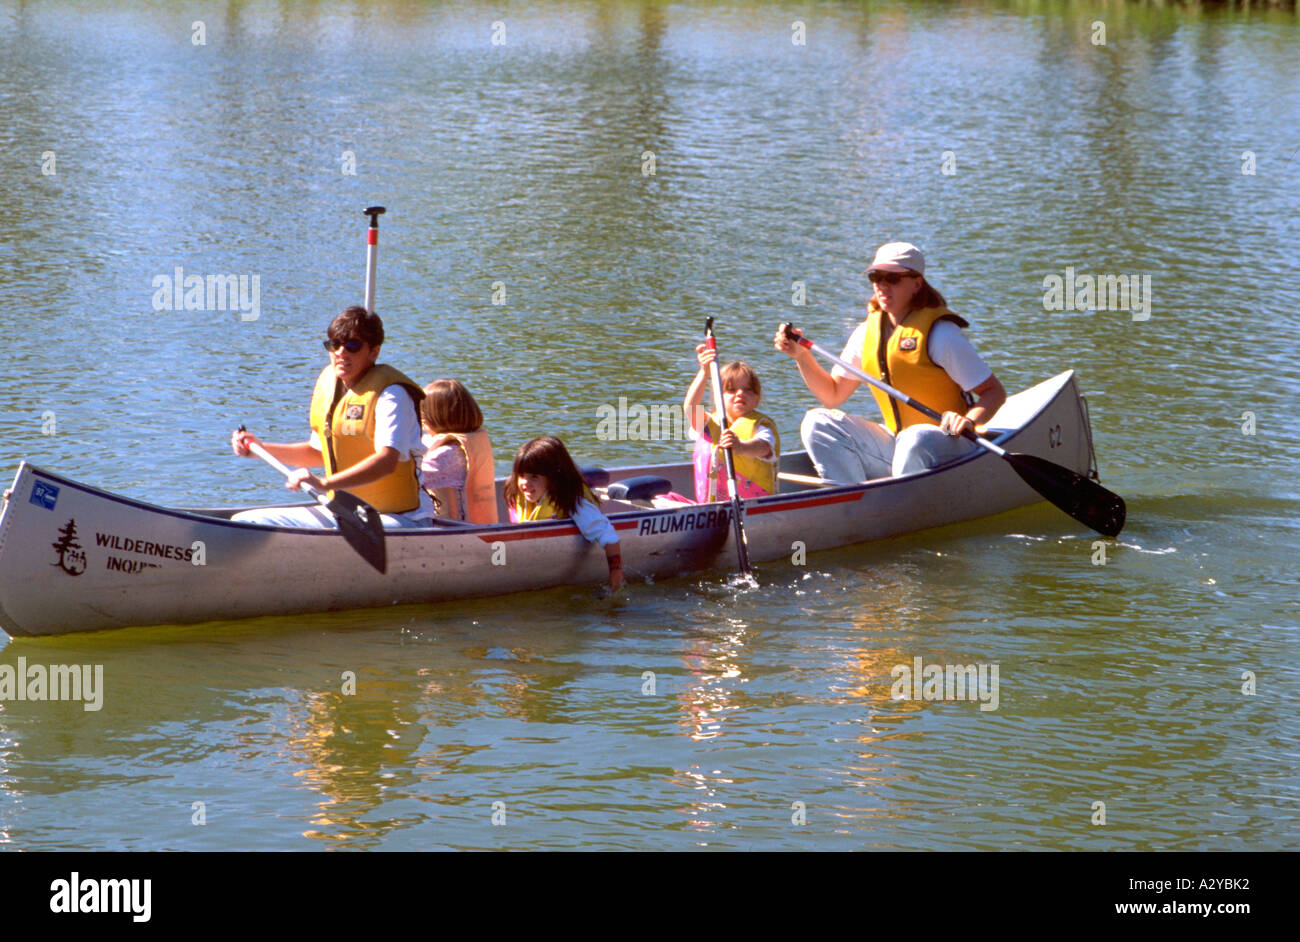 Moms Taking Kids Canoeing Loring Park Pond Age 25 And 5 Ben Jerrys One World Heart Festival Minneapolis Minnesota USA